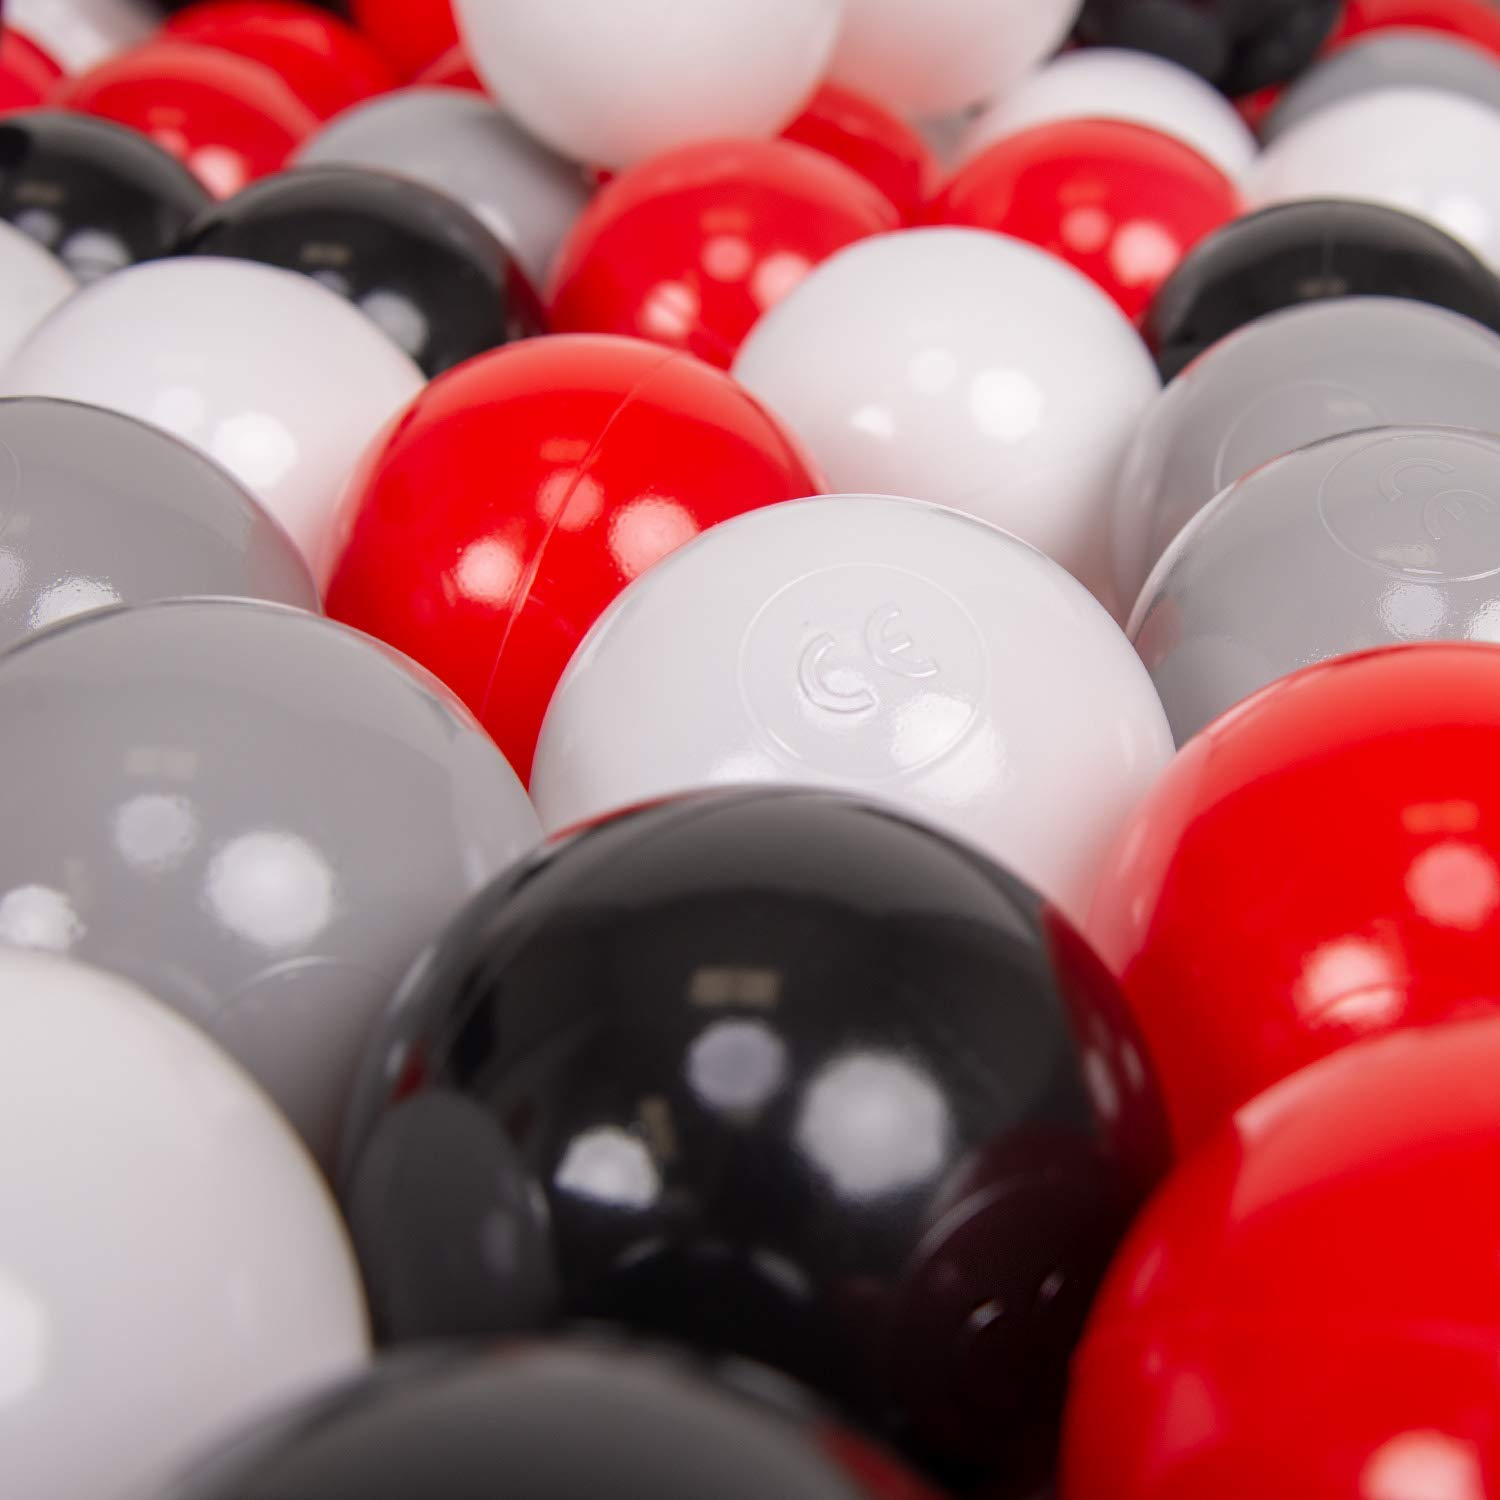 Grey//White//Red//Black KiddyMoon 50 /∅ 7Cm//2.75In Soft Plastic Play Balls For Children Colourful Certified Made In EU